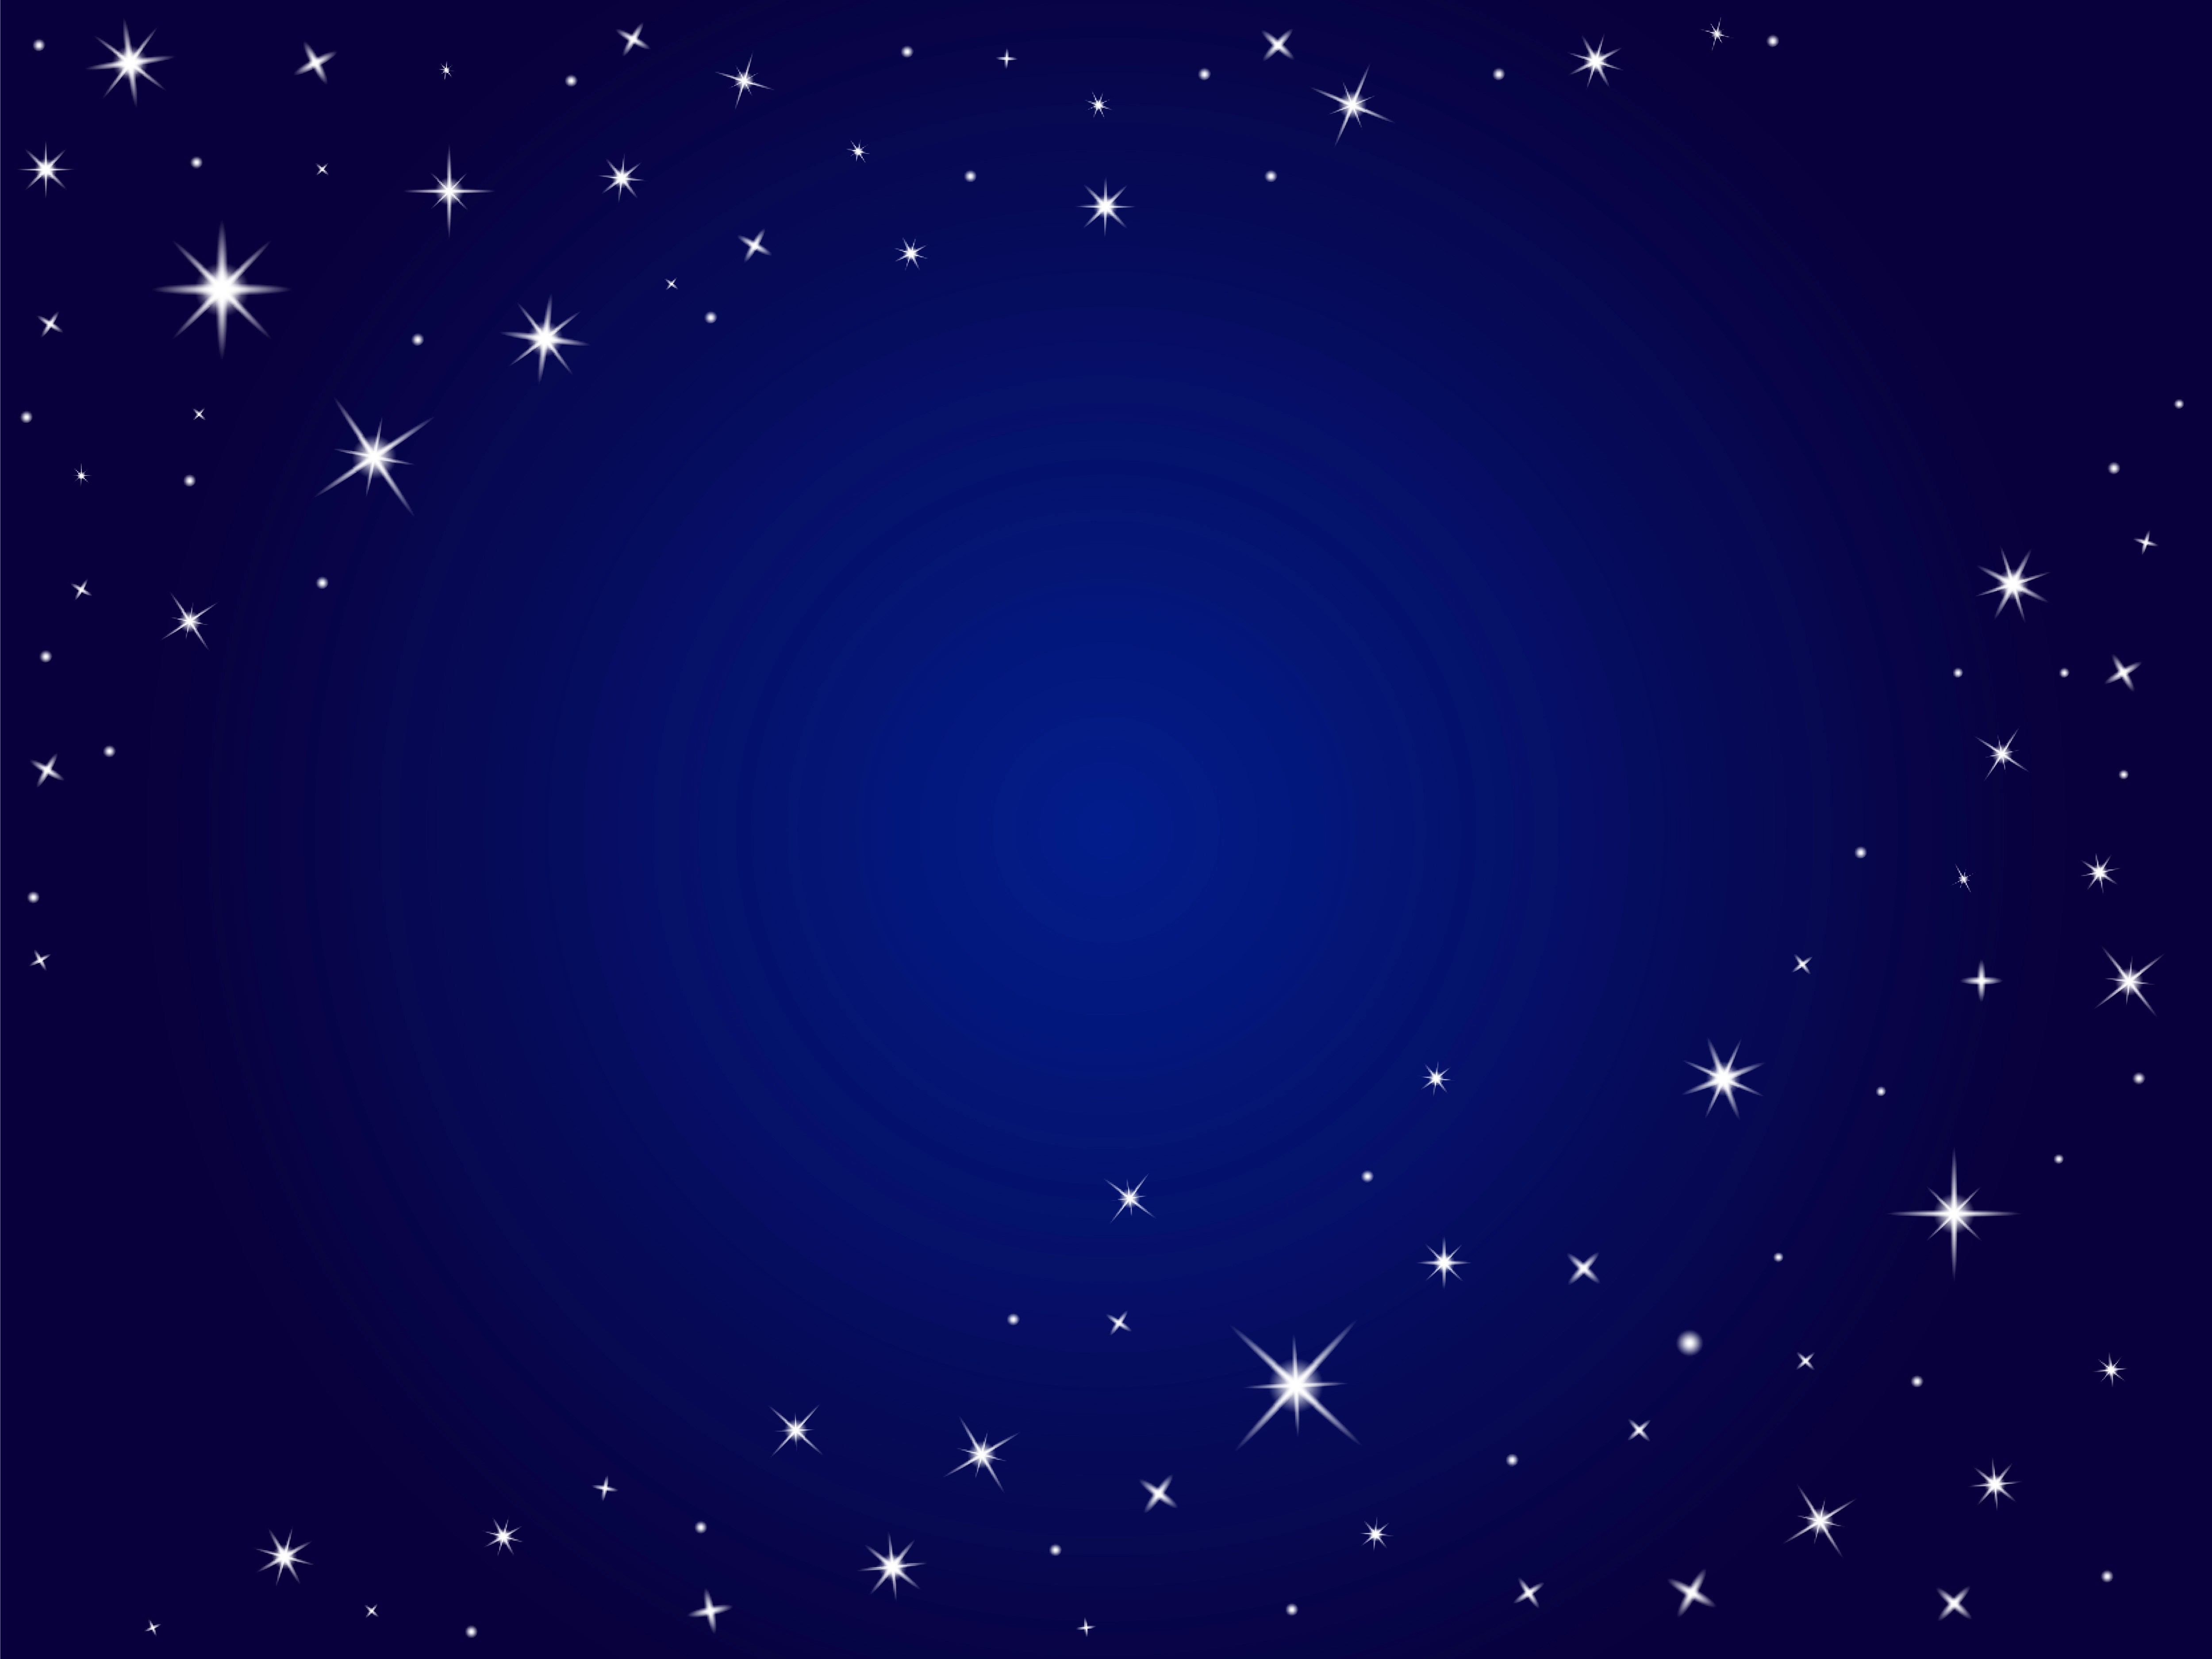 Blue space stars vector background ,night sky - Download ...